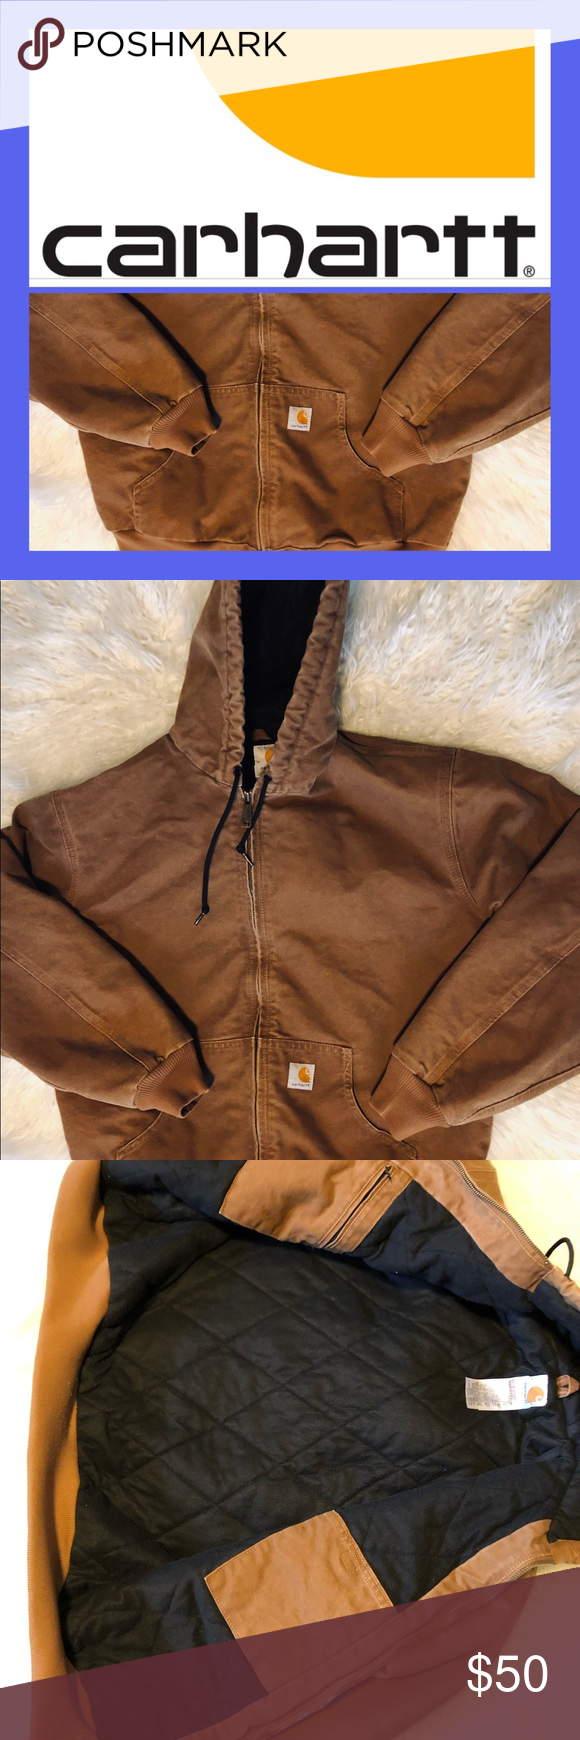 "Carhartt Womens Sz L Active Jac Heavy-Duty Jacket Carhartt Women Style WJ130 Quilted Flannel-Lined Active Jac in ""Carhartt Brown"" Size Large. Jacket measures 24"" armpit to armpit and 26"" shoulder to waist. Jacket is in Pre-Owned, Excellent Condition......free of any rips, stains, tears, odors or any other flaws. ***Please note the last two photos are stock photos from the company website. The first photo shows the jacket on a model and the second has the companies description*** Carhartt Jackets #carharttwomen"